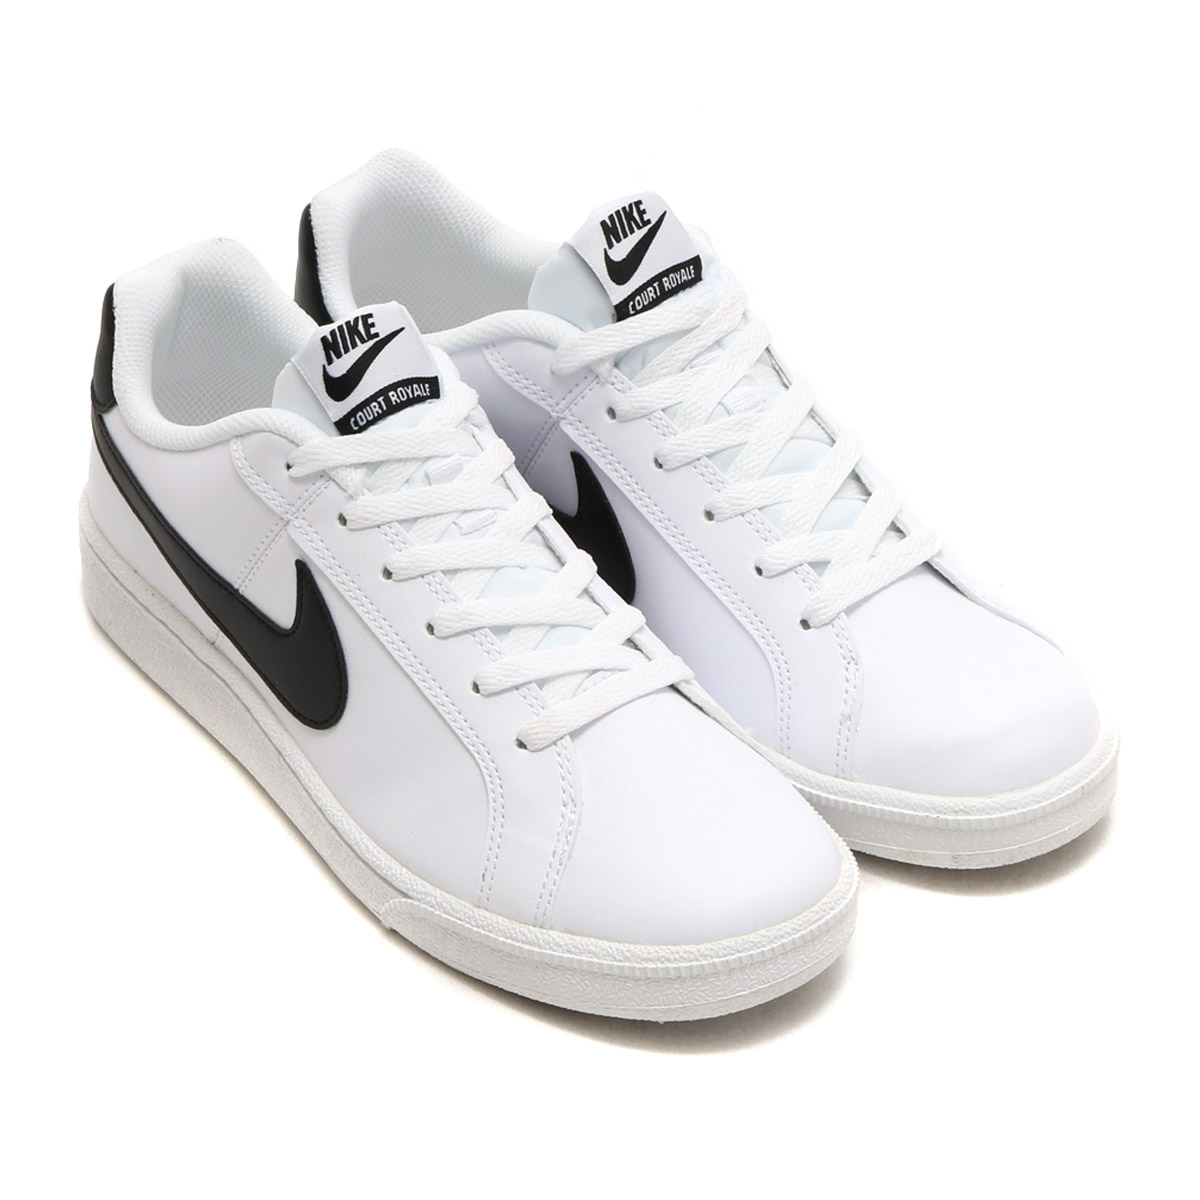 huge selection of 6b382 598b1 NIKE COURT ROYALE SL (Nike Court Royal SL) WHITE BLACK 16FA-I